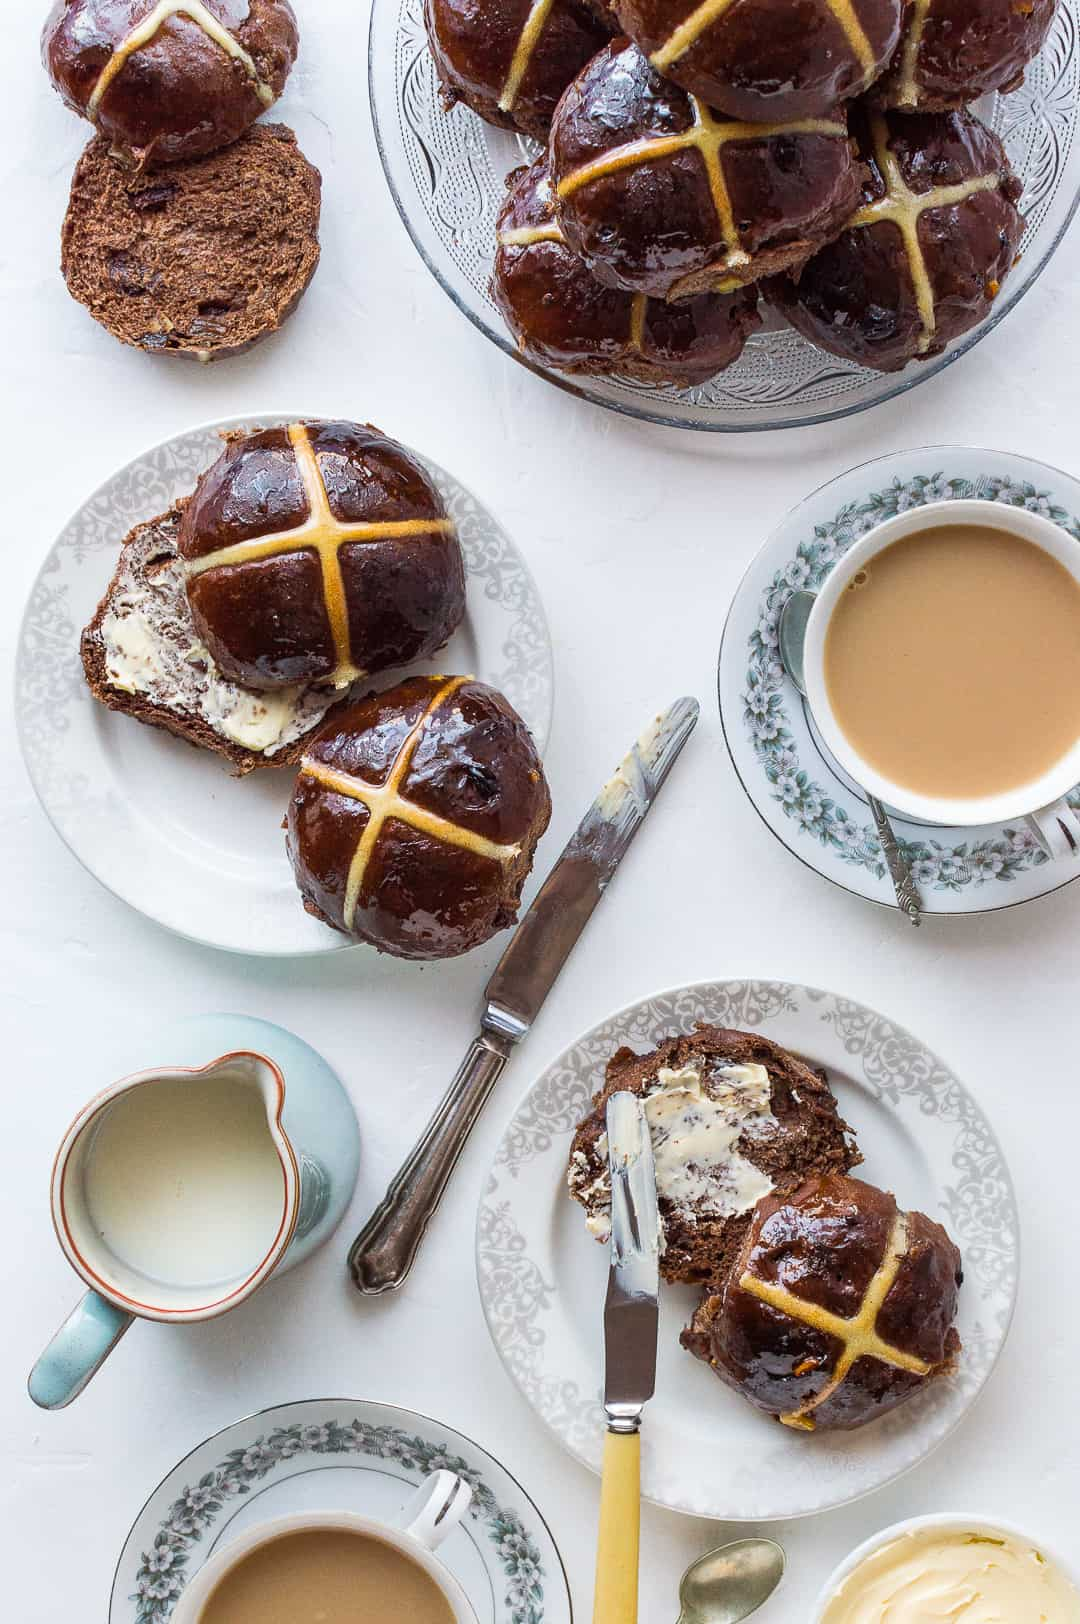 Chocolate orange hot cross buns with butter and tea.